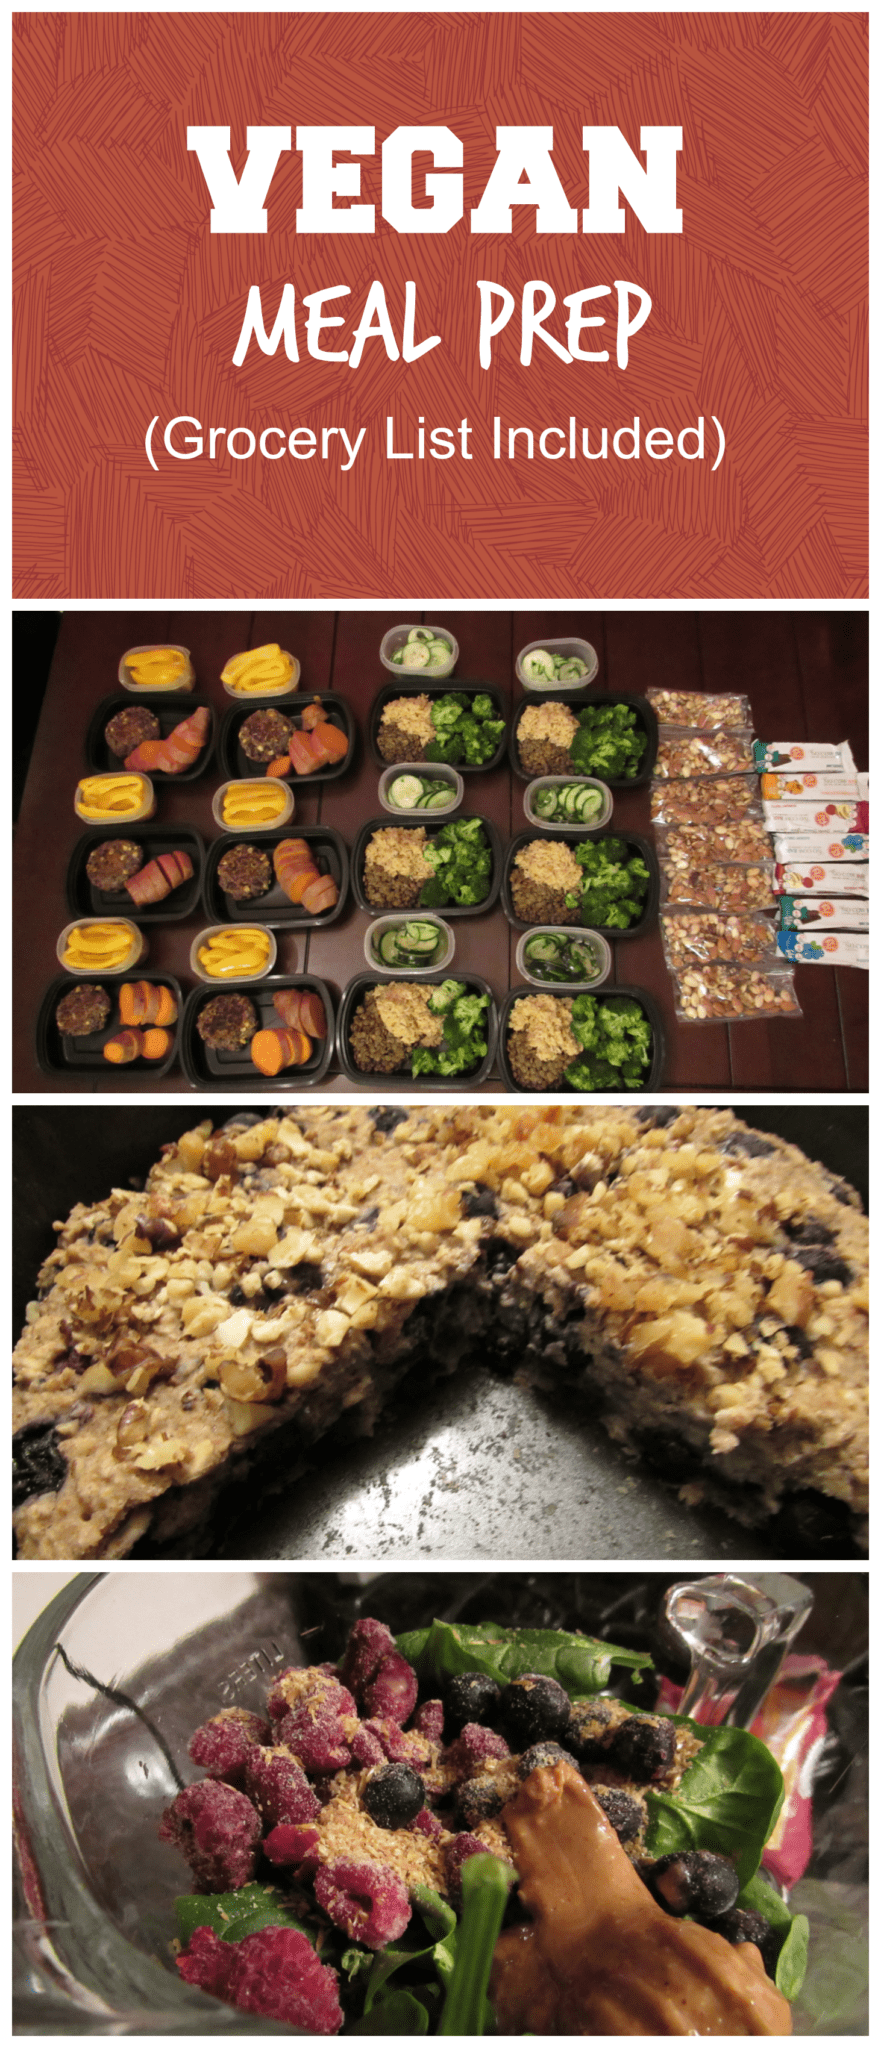 A full week of vegan meal prep! A portion control plan rich in fiber, nutrients, healthy fats, and protein. ~www.LivingLikeLeila.com~